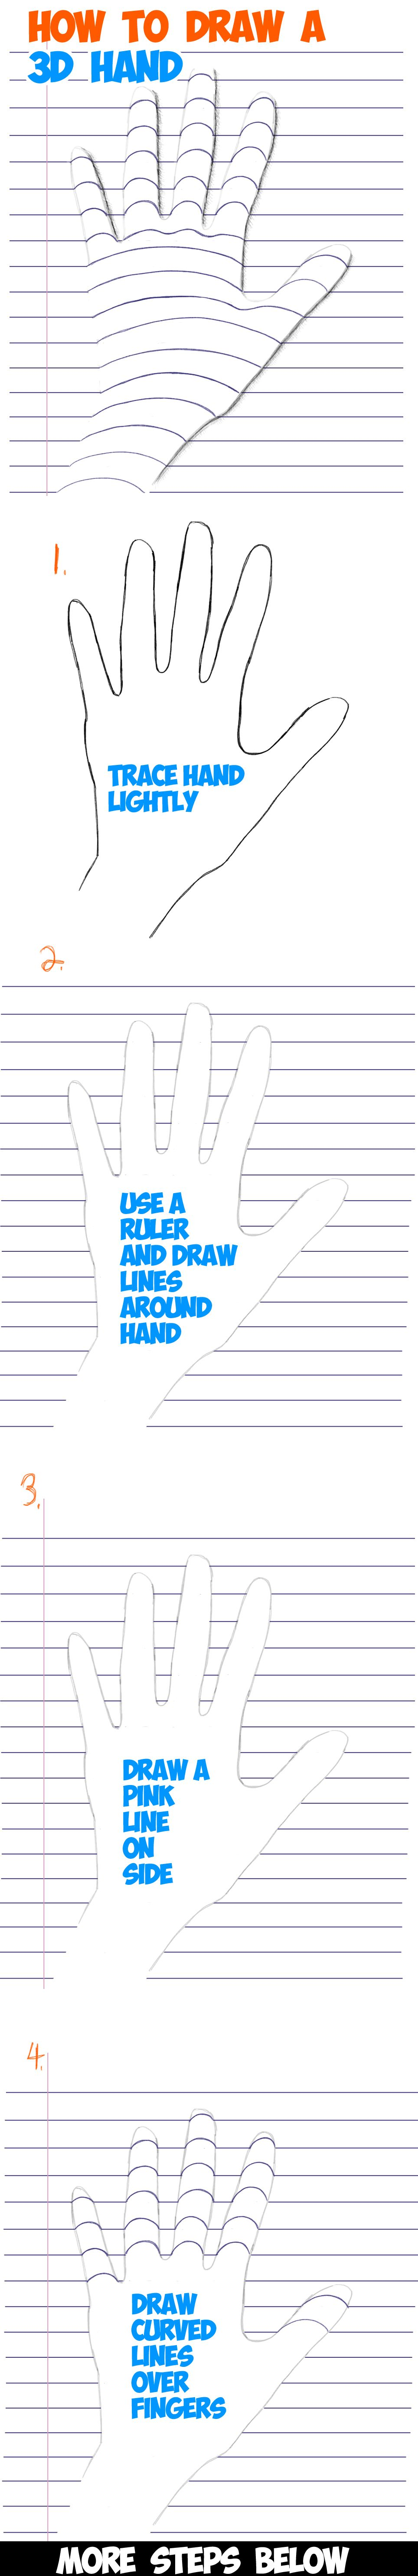 Learn How To Draw A 3d Hand On Notebook Paper  Step By Step Drawing Trick